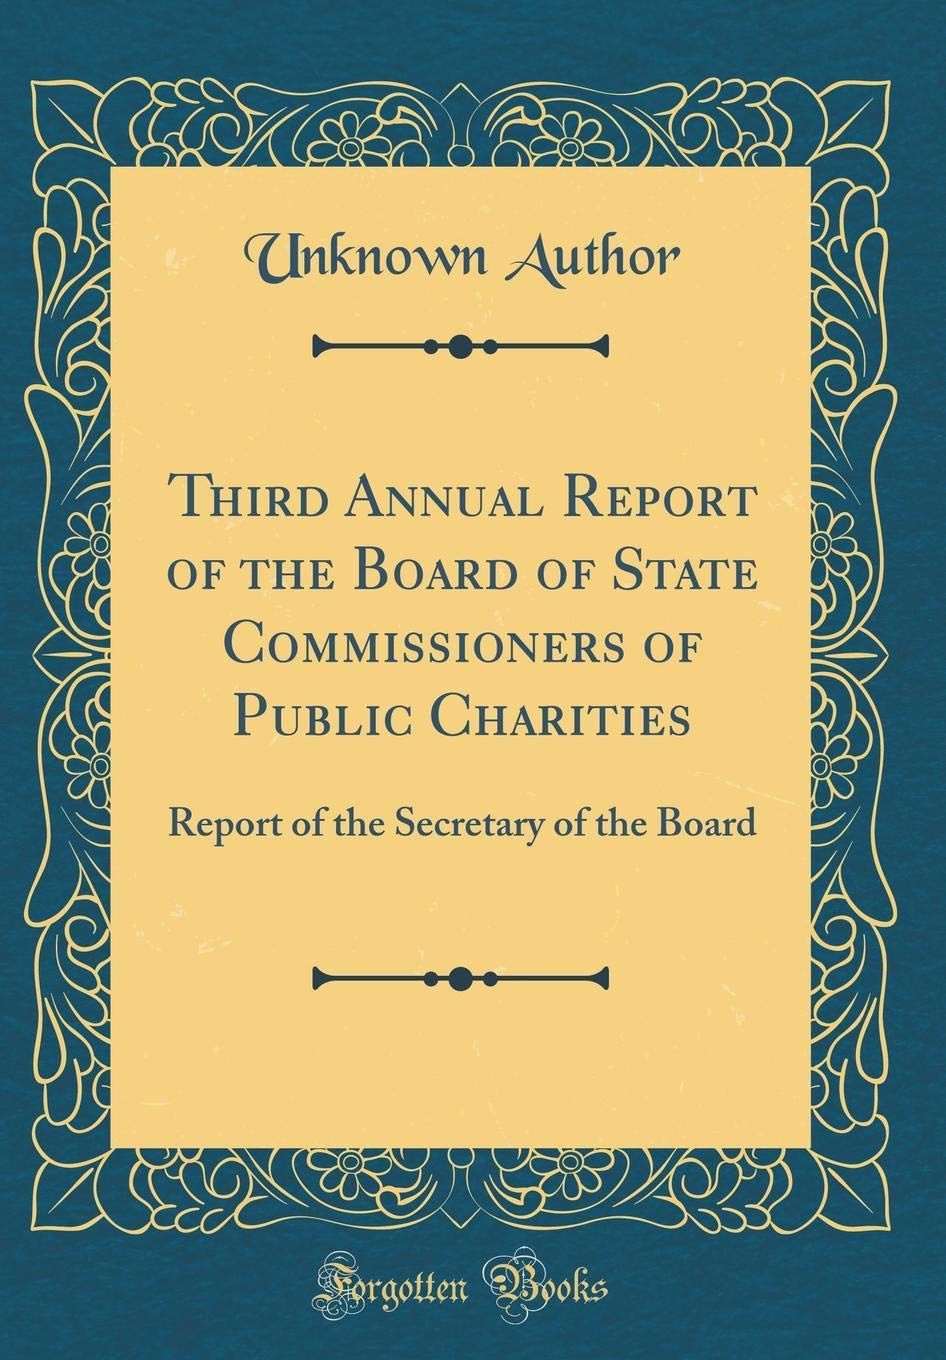 Third Annual Report of the Board of State Commissioners of Public Charities: Report of the Secretary of the Board (Classic Reprint) PDF